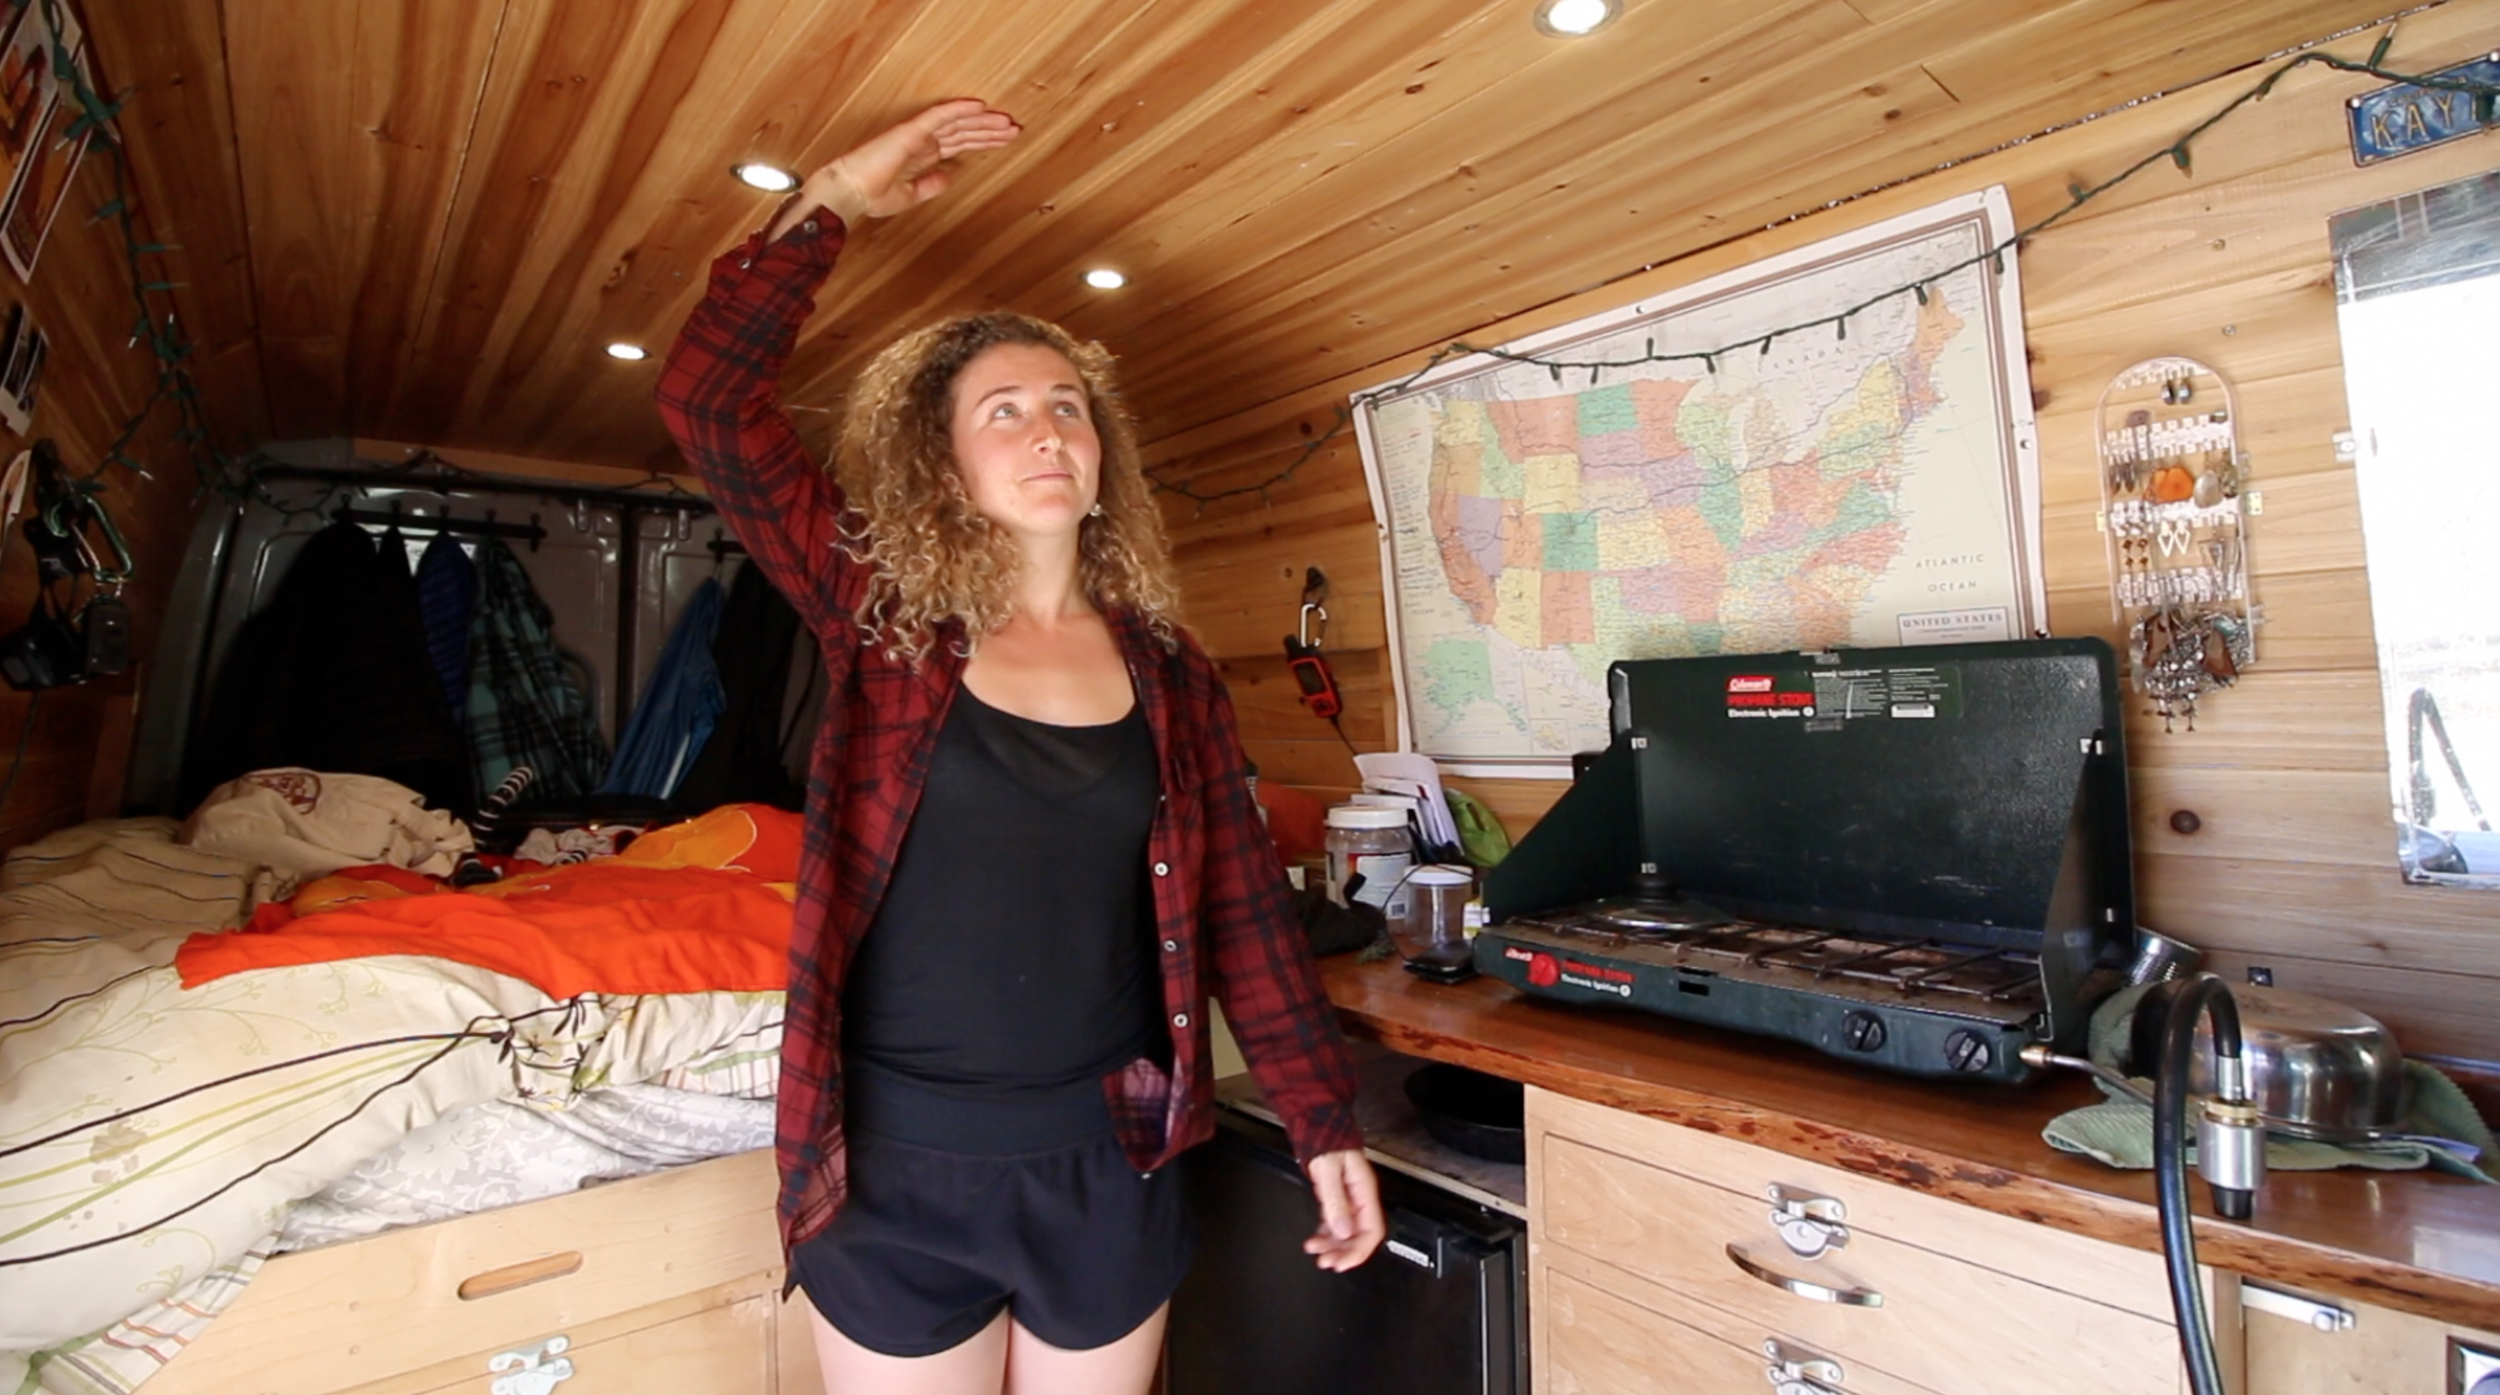 Dating in a van .- One Chick Travels